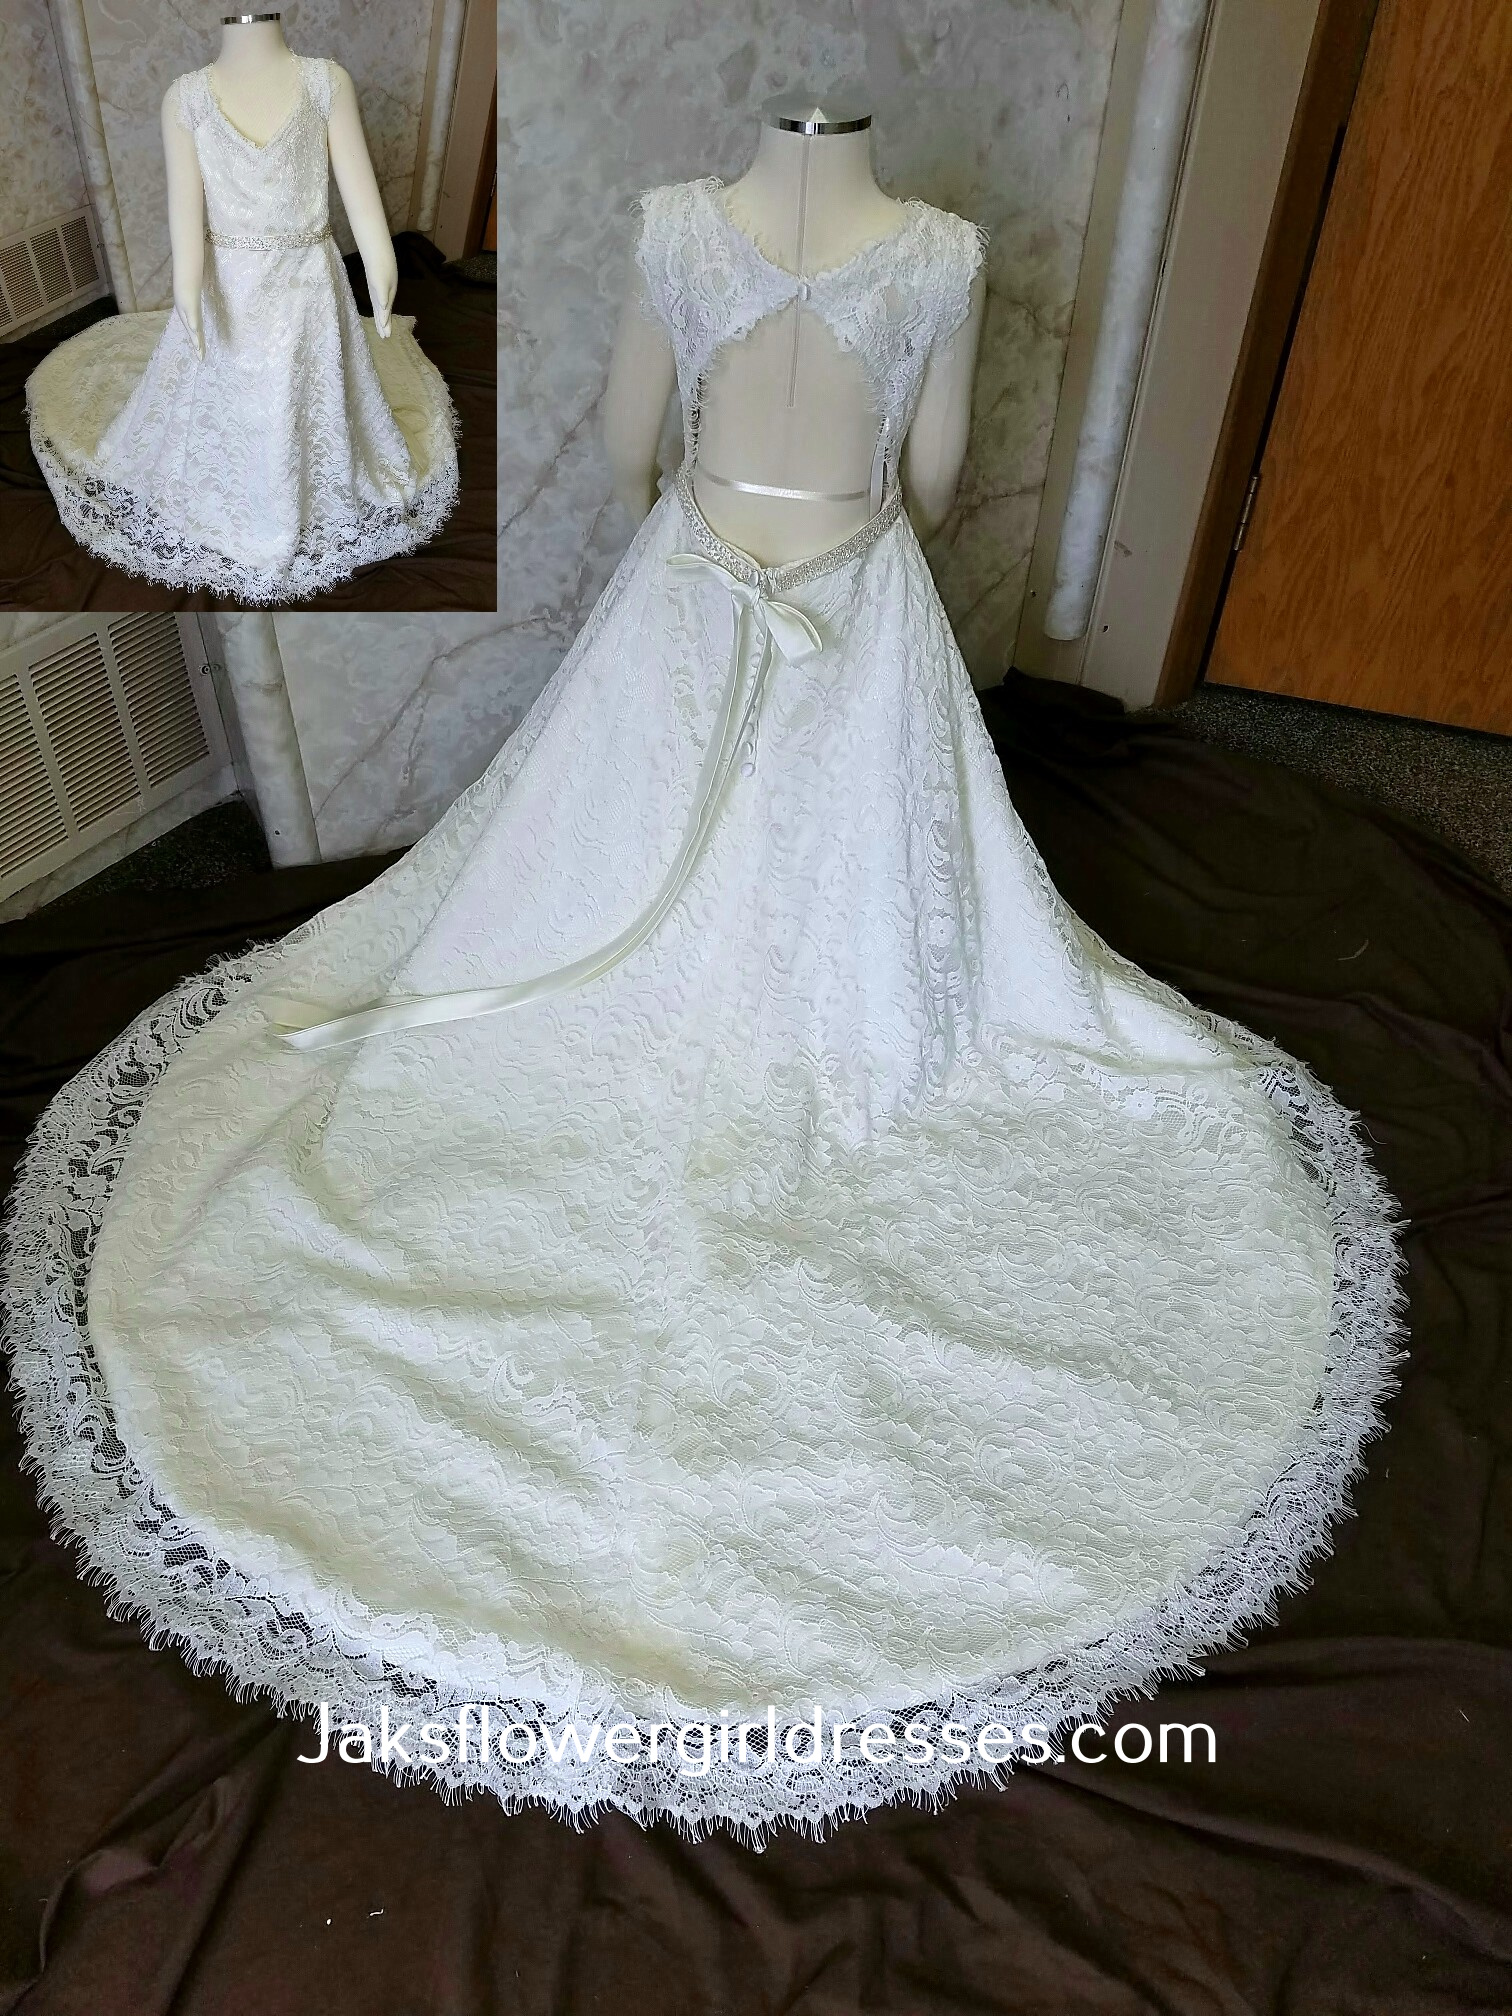 Match my lace open back wedding dress for my flower girls dress